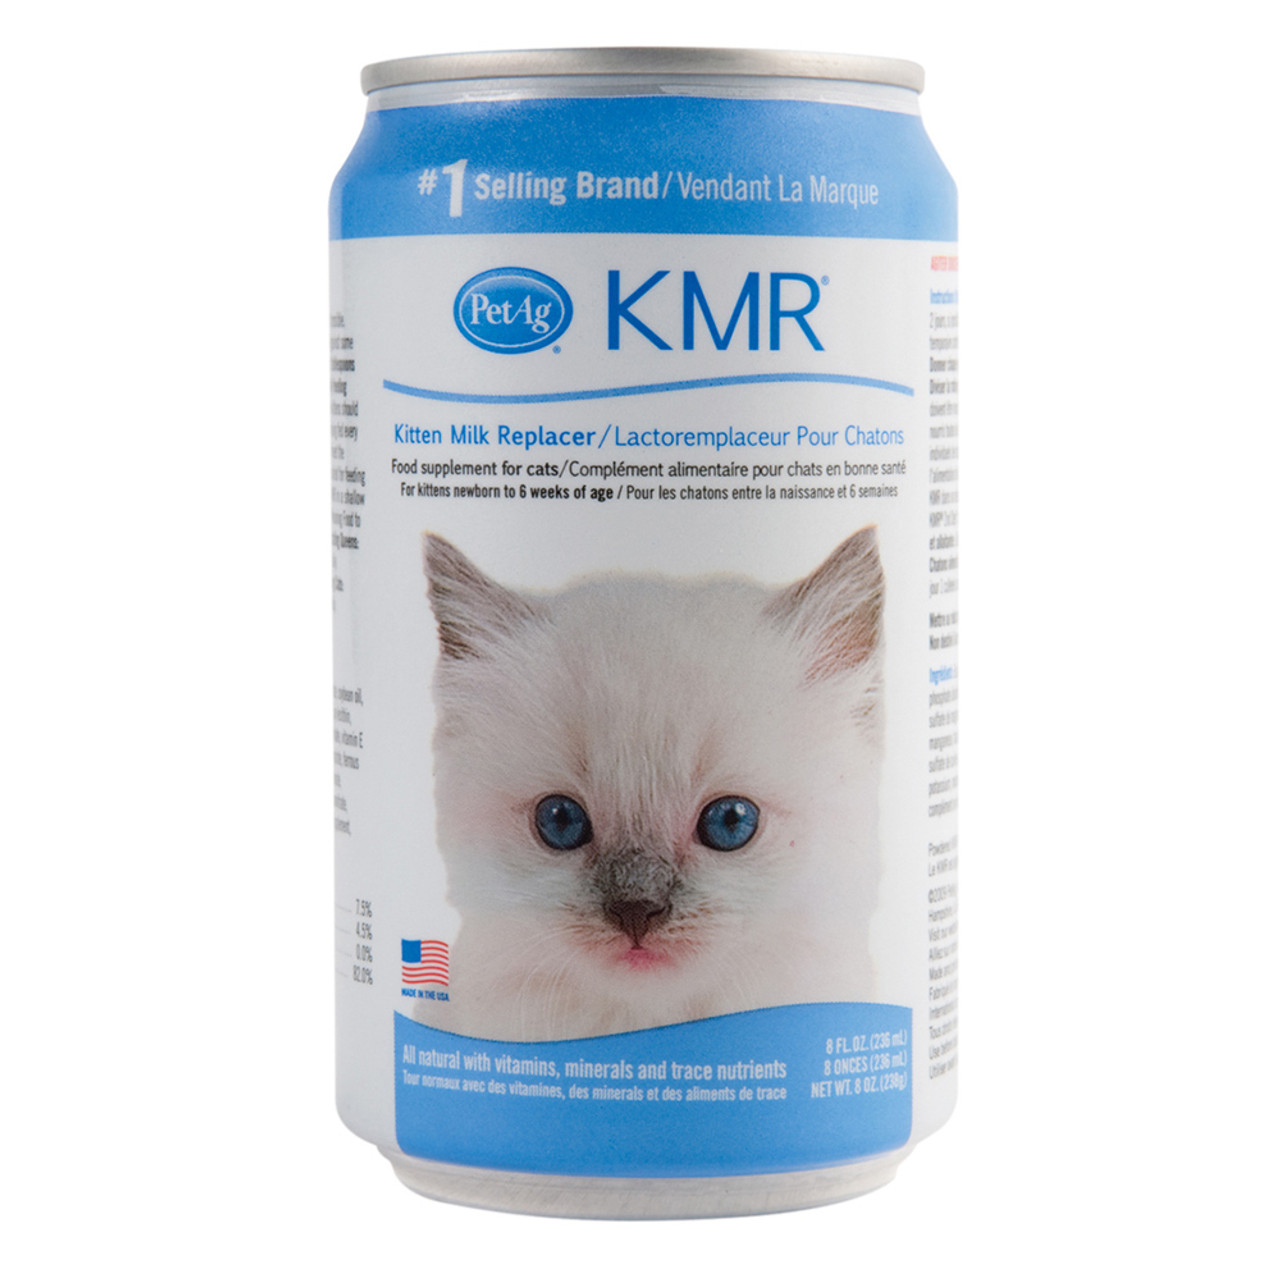 PetAg KMR Kitten Milk Replacer Liquid